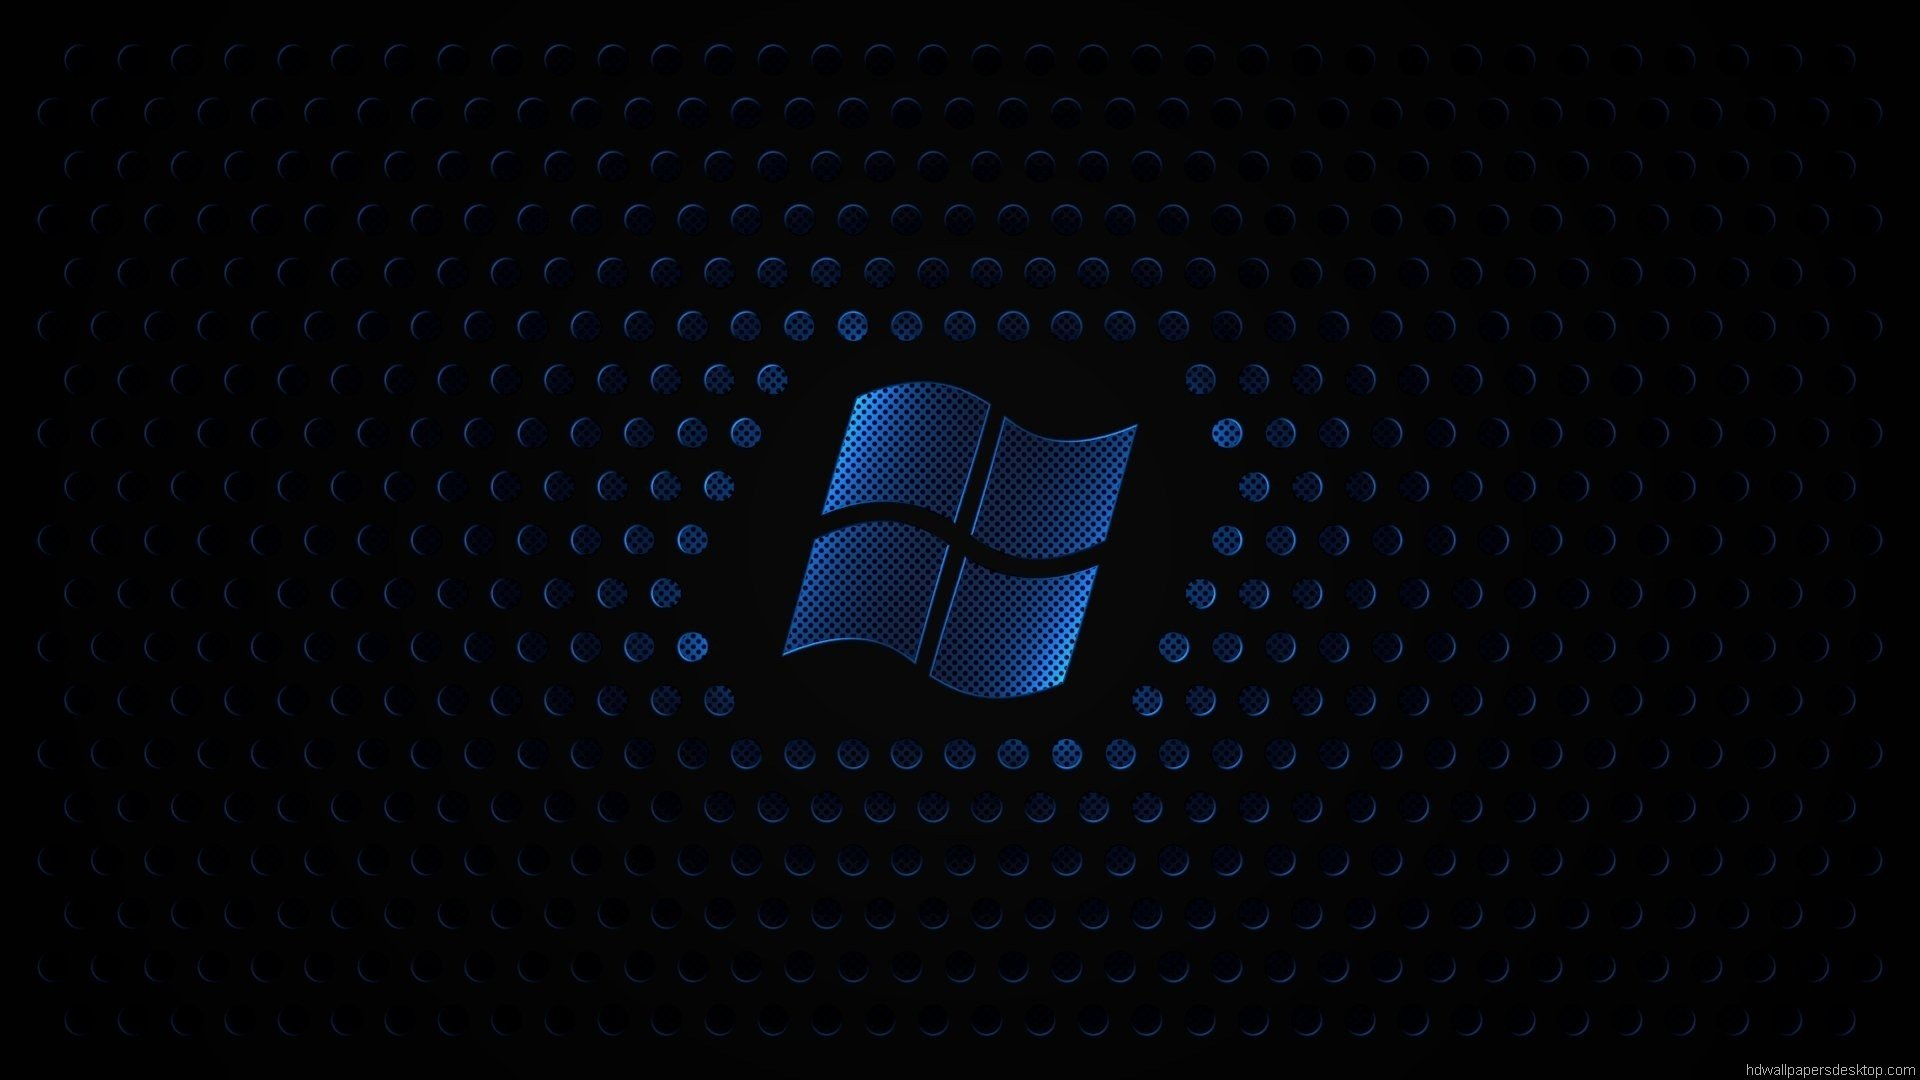 desktop background Wallpaper wallpapers computer 1920x1080 1920x1080